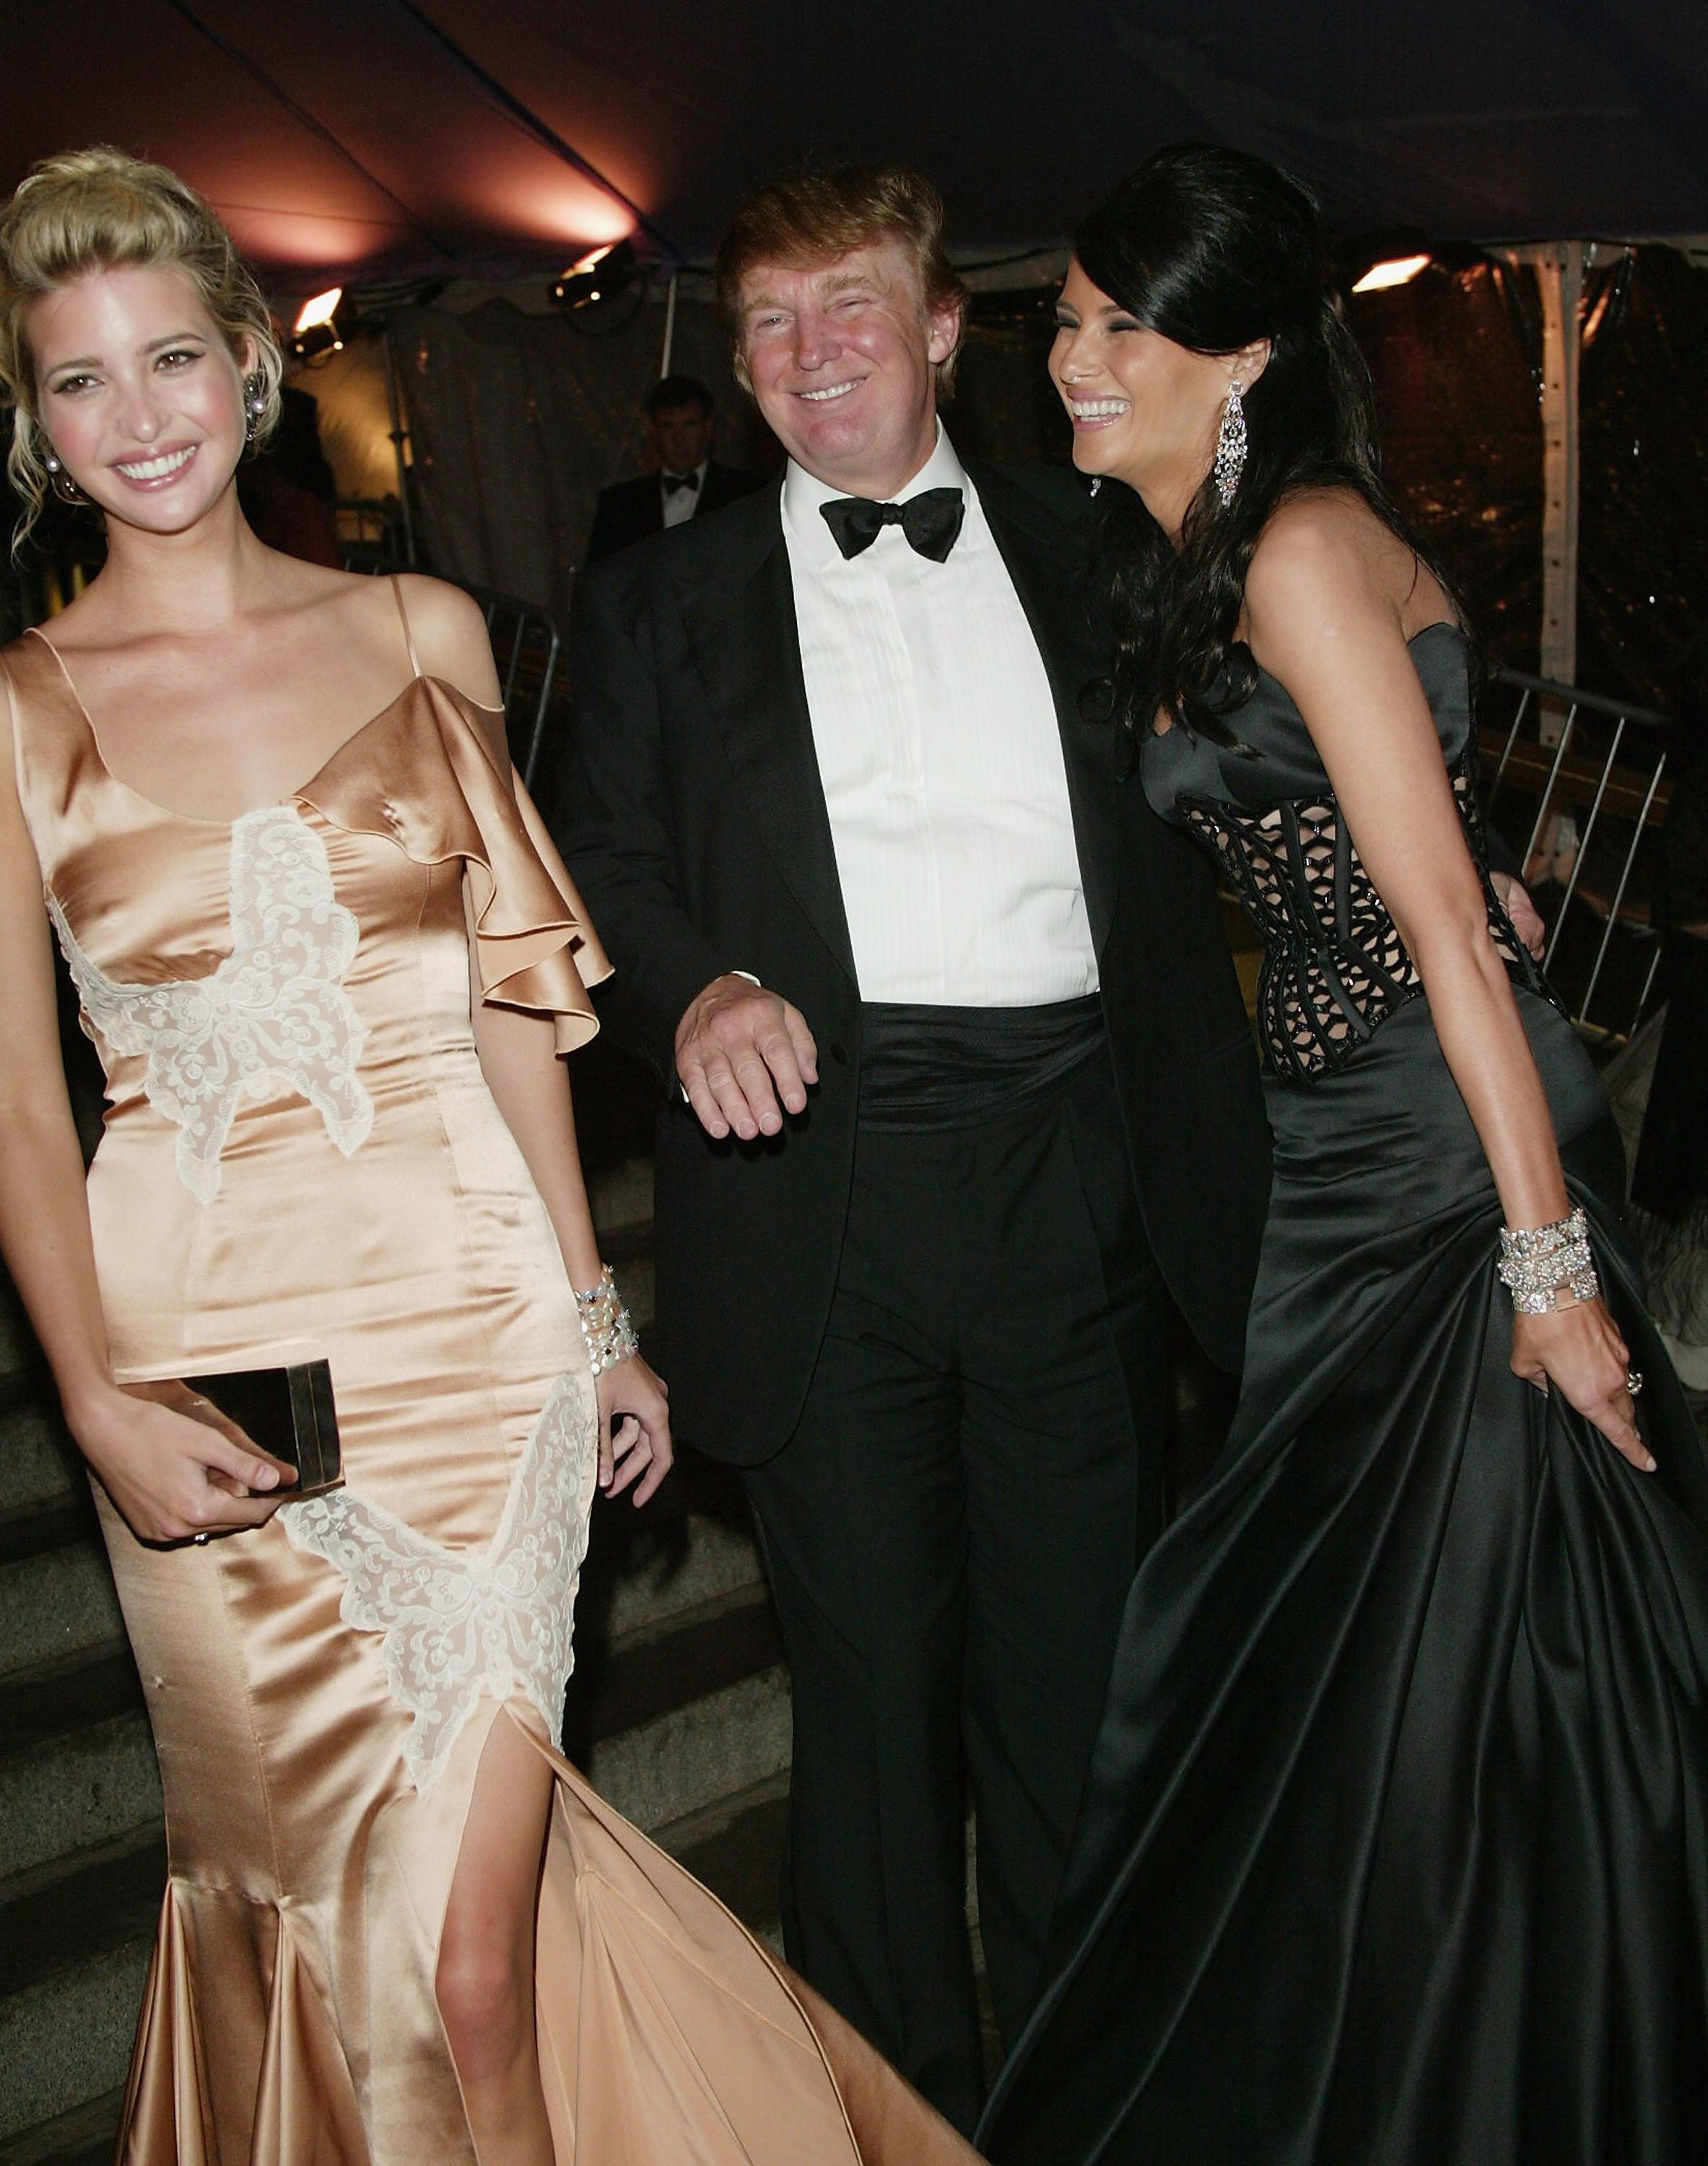 President Trump and his then-girlfriend Melaniaat the gala with Ivanka in 2004.